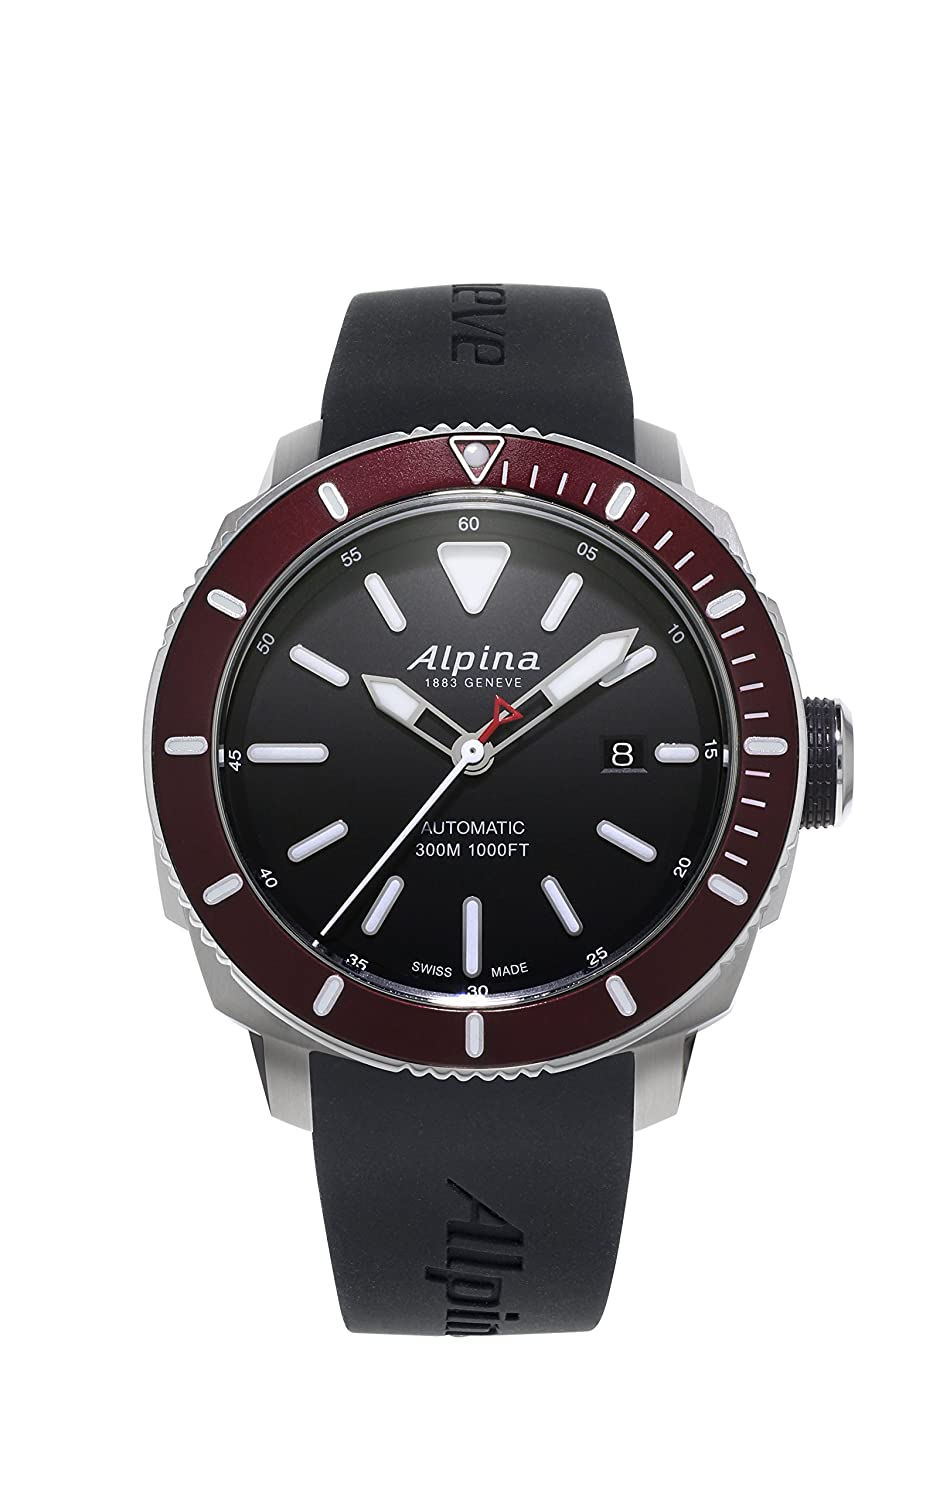 Alpina Men's 'SEASTRONG DIVER 300' Automatic Stainless Steel and Rubber Casual Watch, Color:Black (Model: AL-525LBBRG4V6)